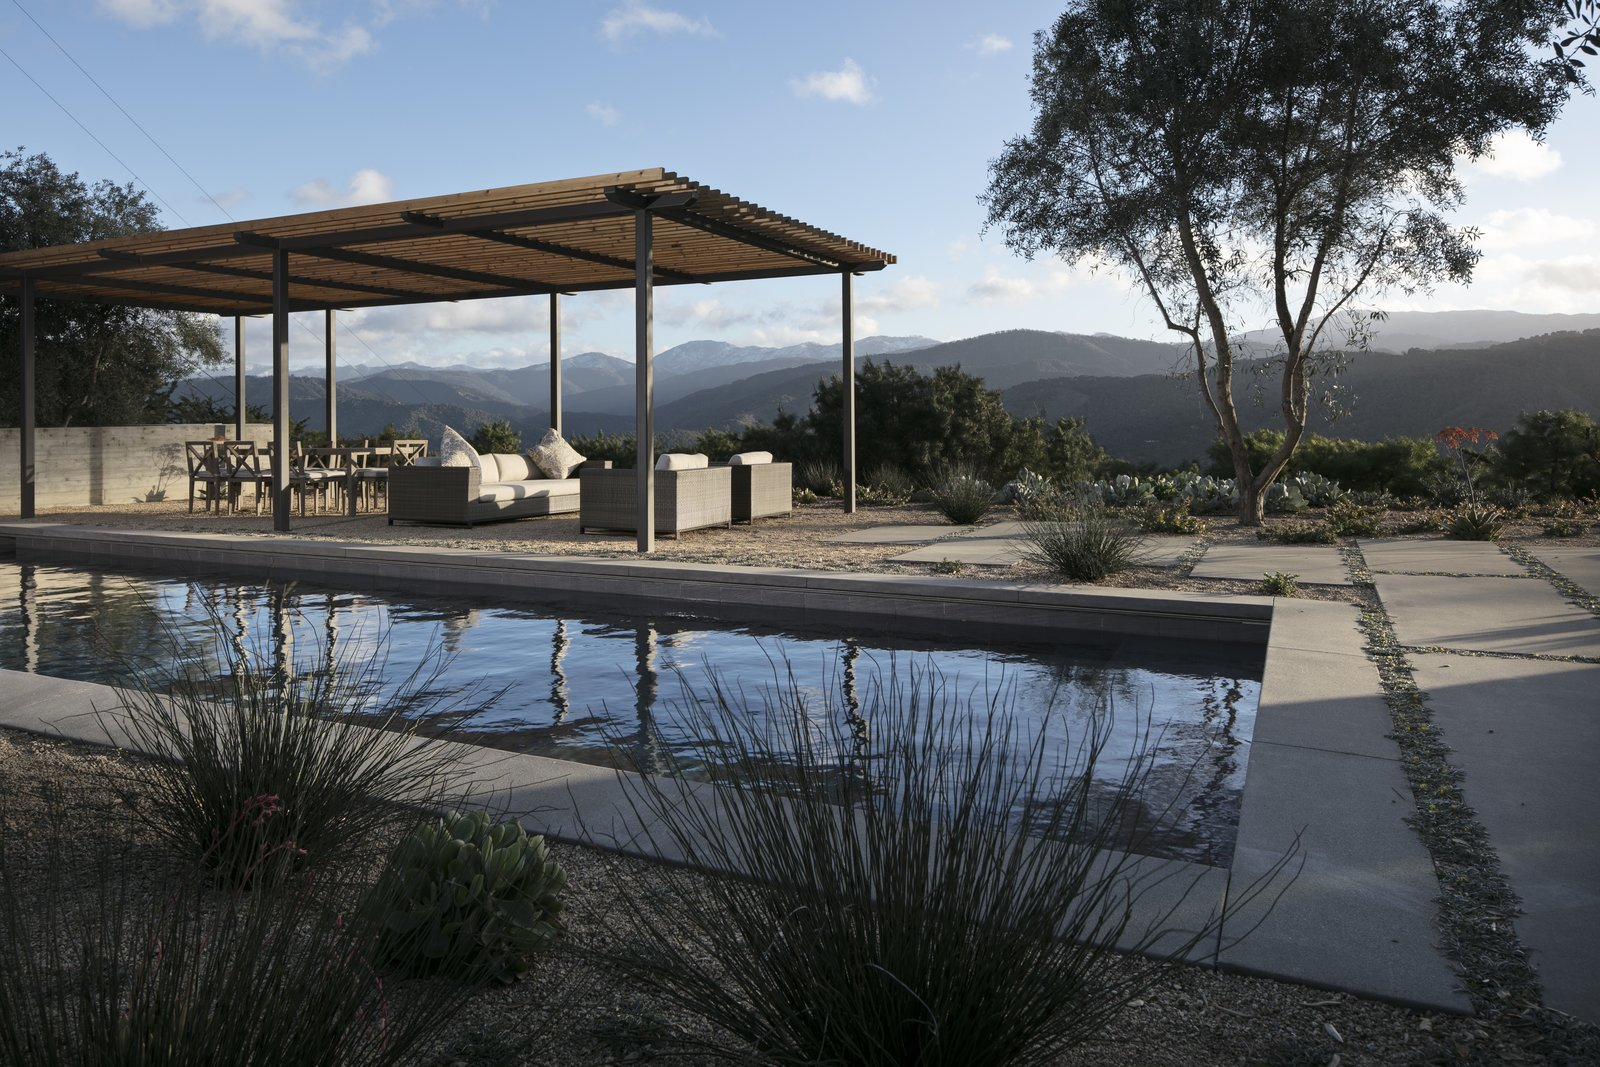 Looking over the pool to the outdoor living room and mountain views.